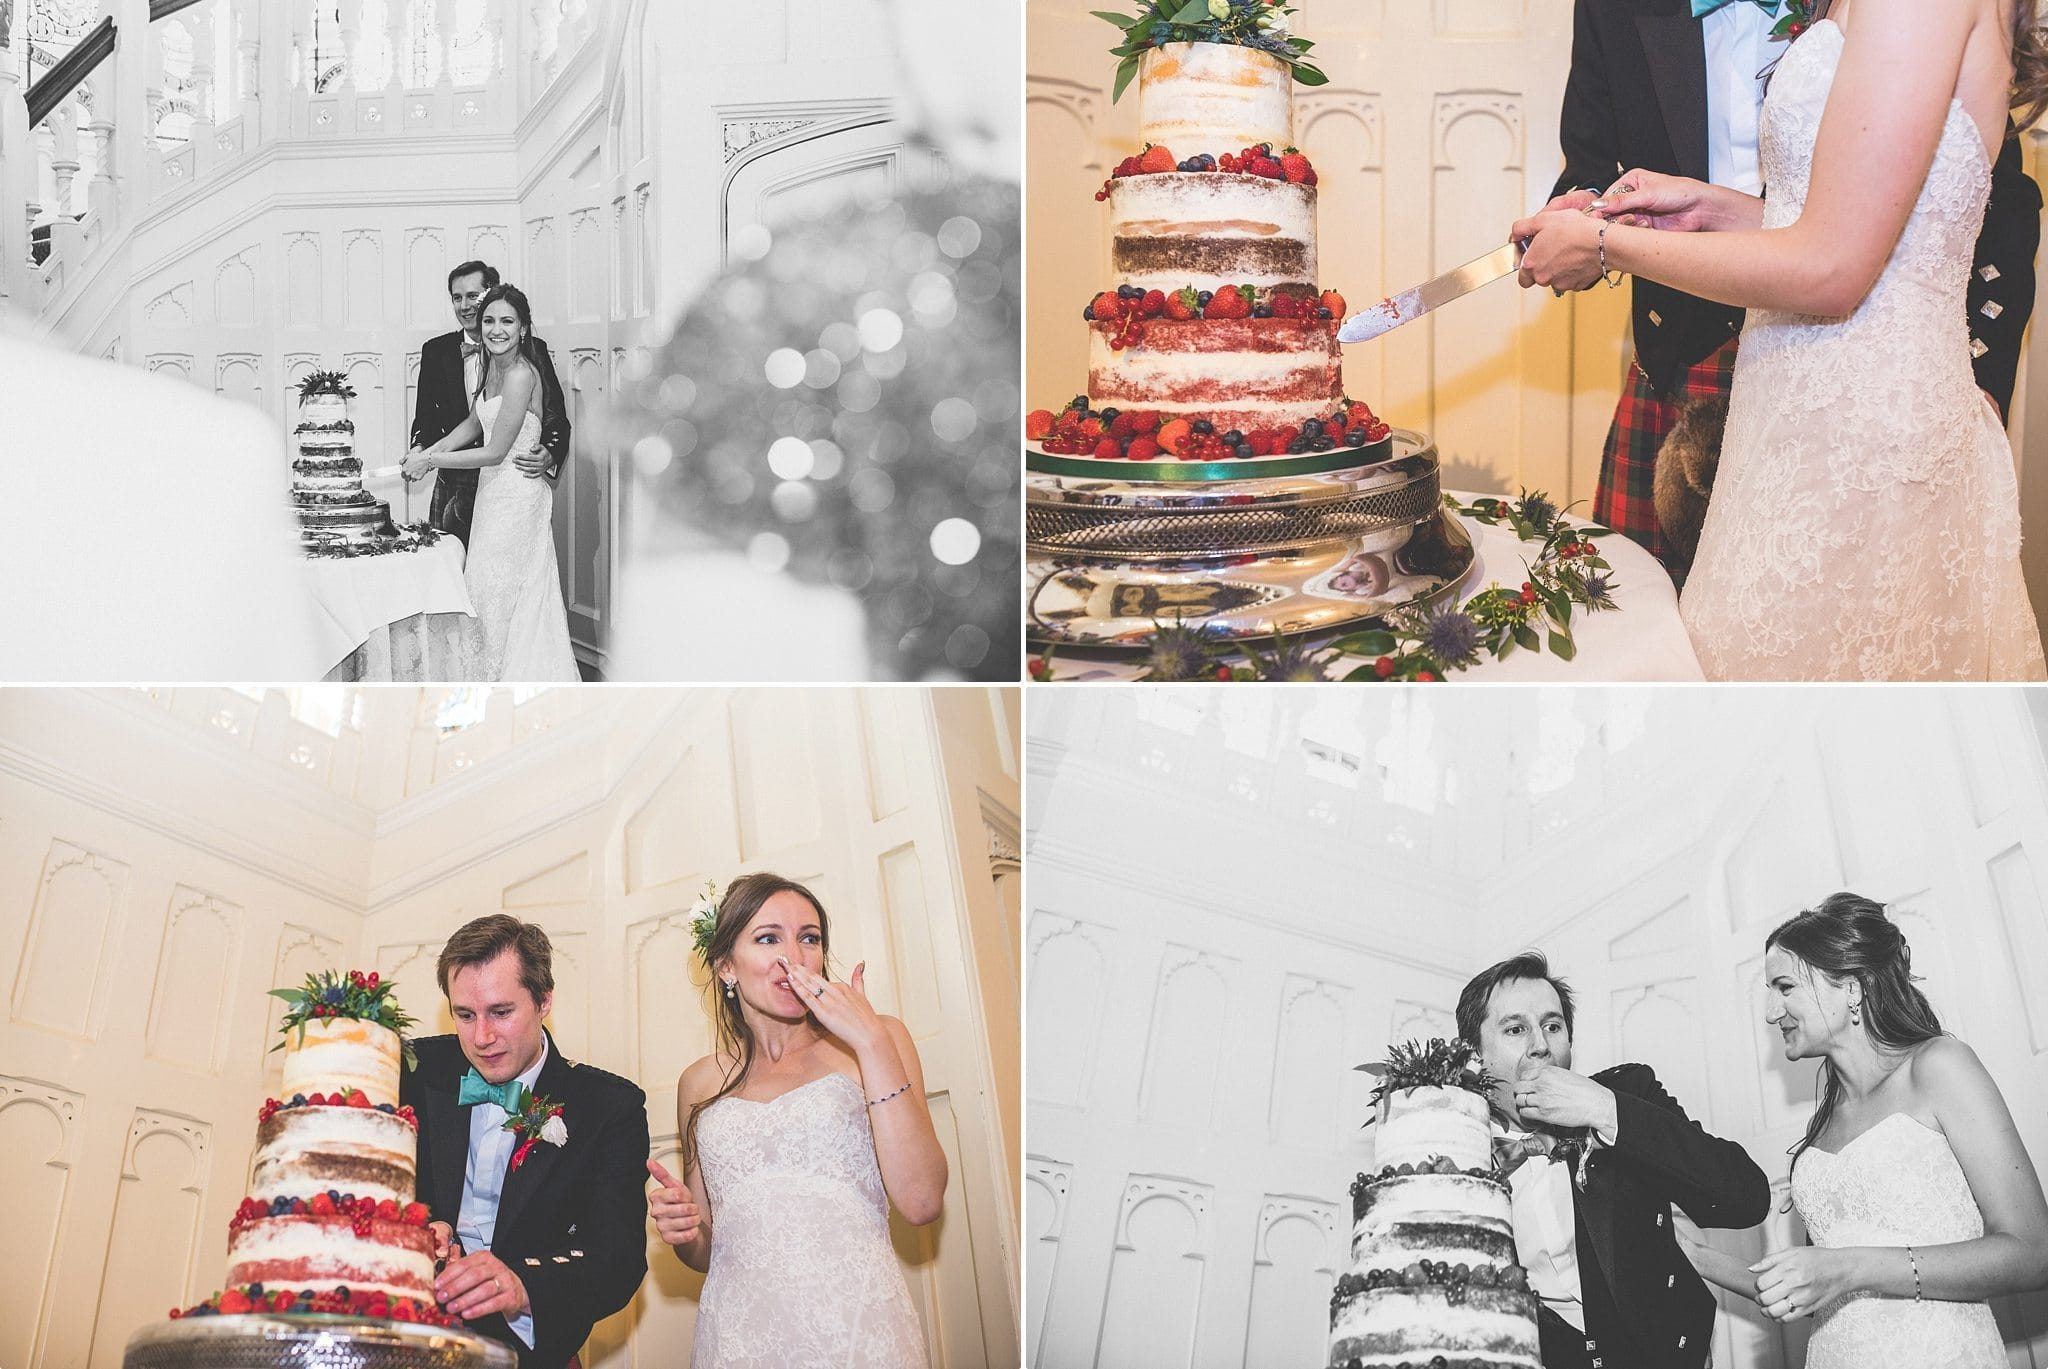 Bride and groom cutting the wedding cake at the elvetham hotel